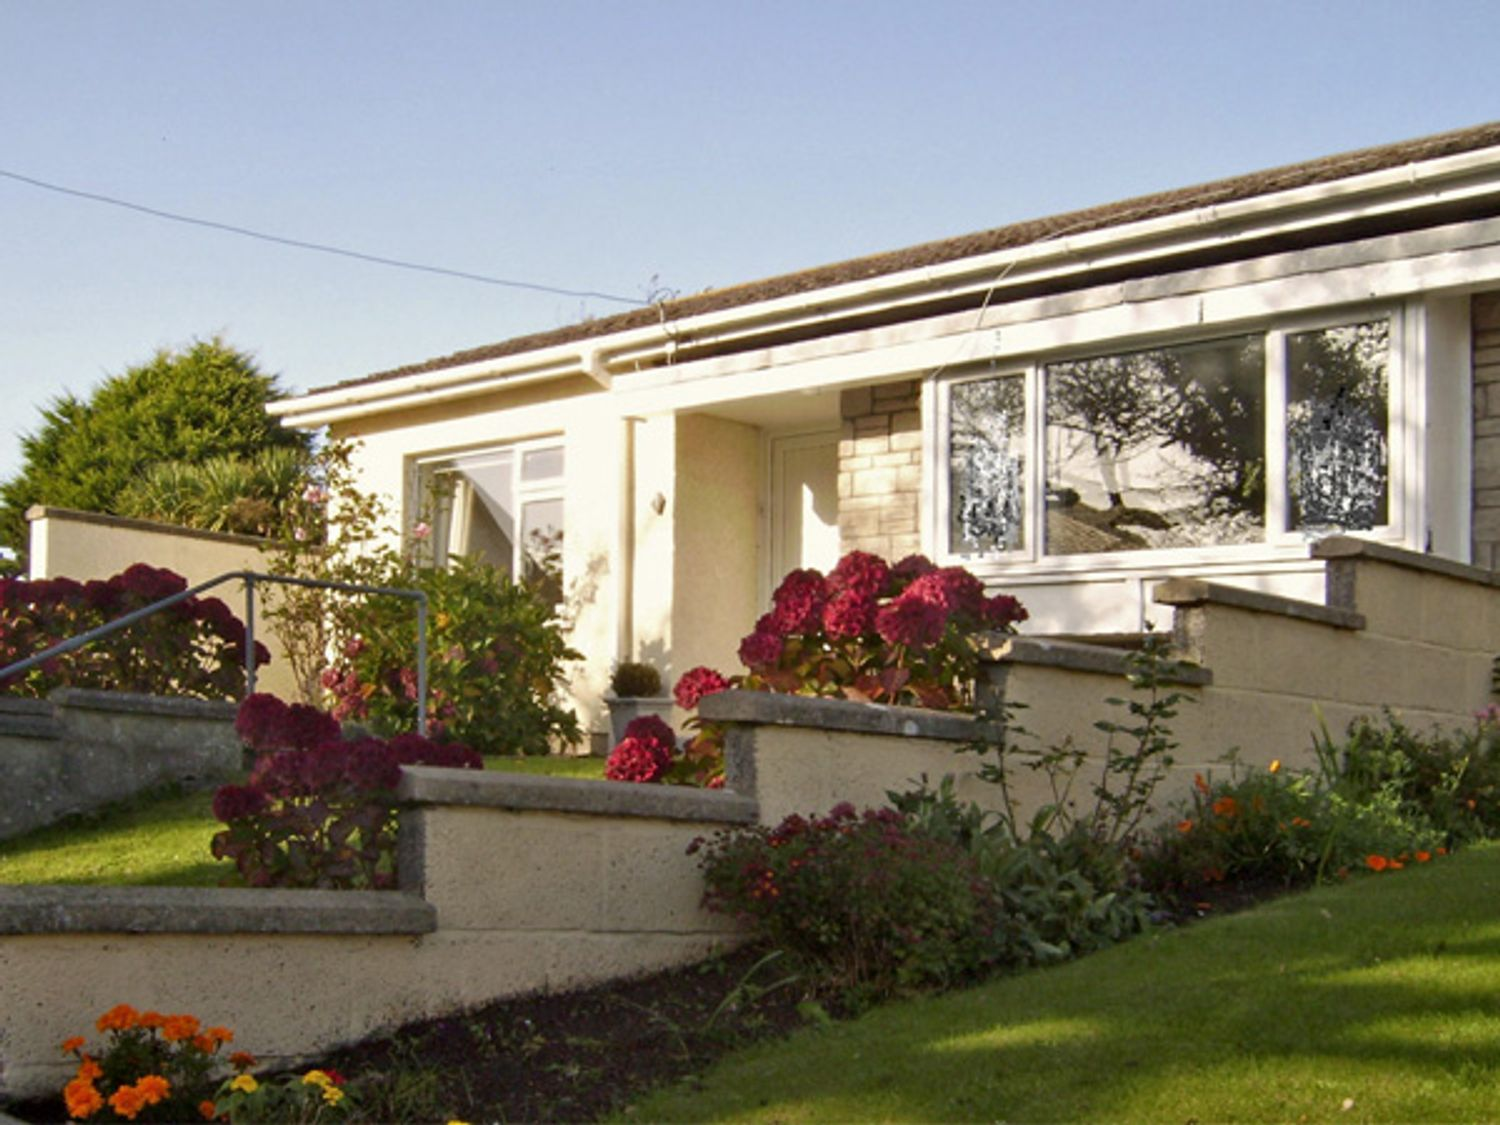 1 Mirehouse Place - South Wales - 2764 - photo 1